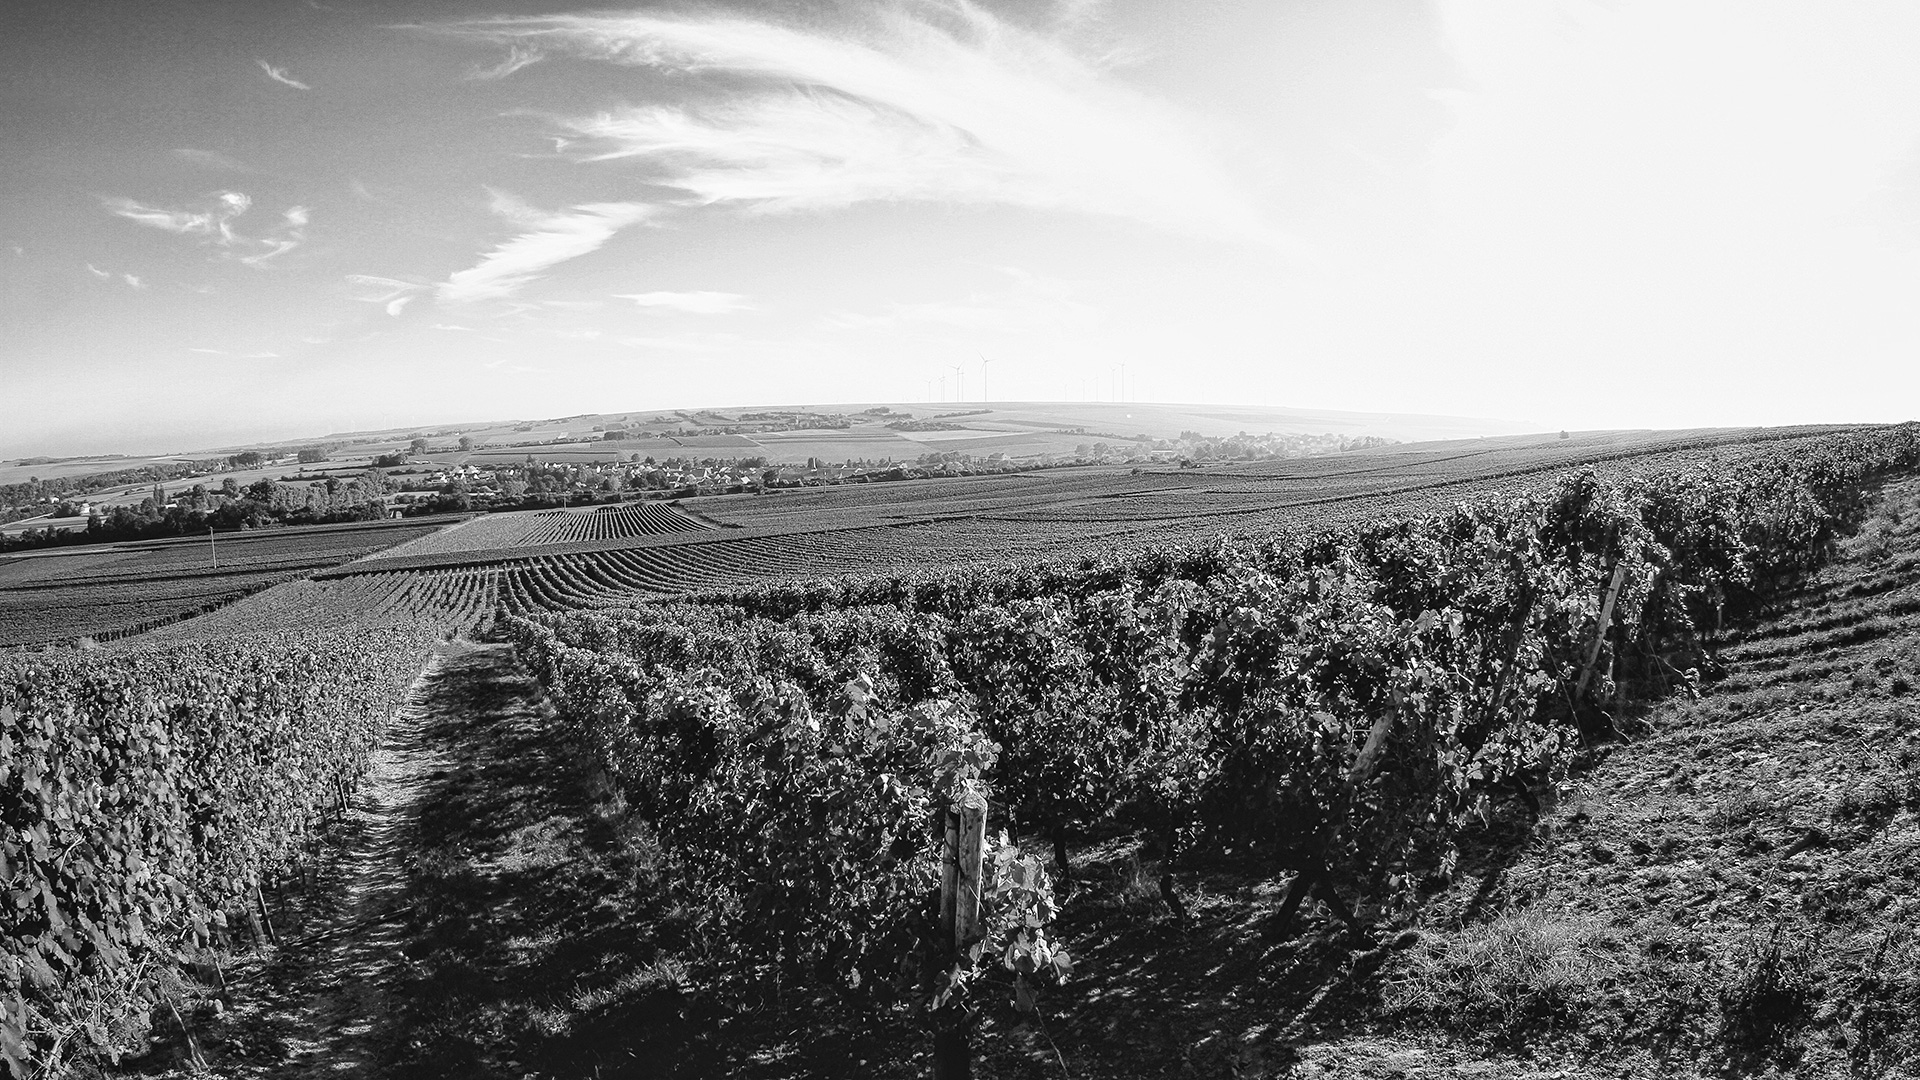 Vineyards in Rheinhessen